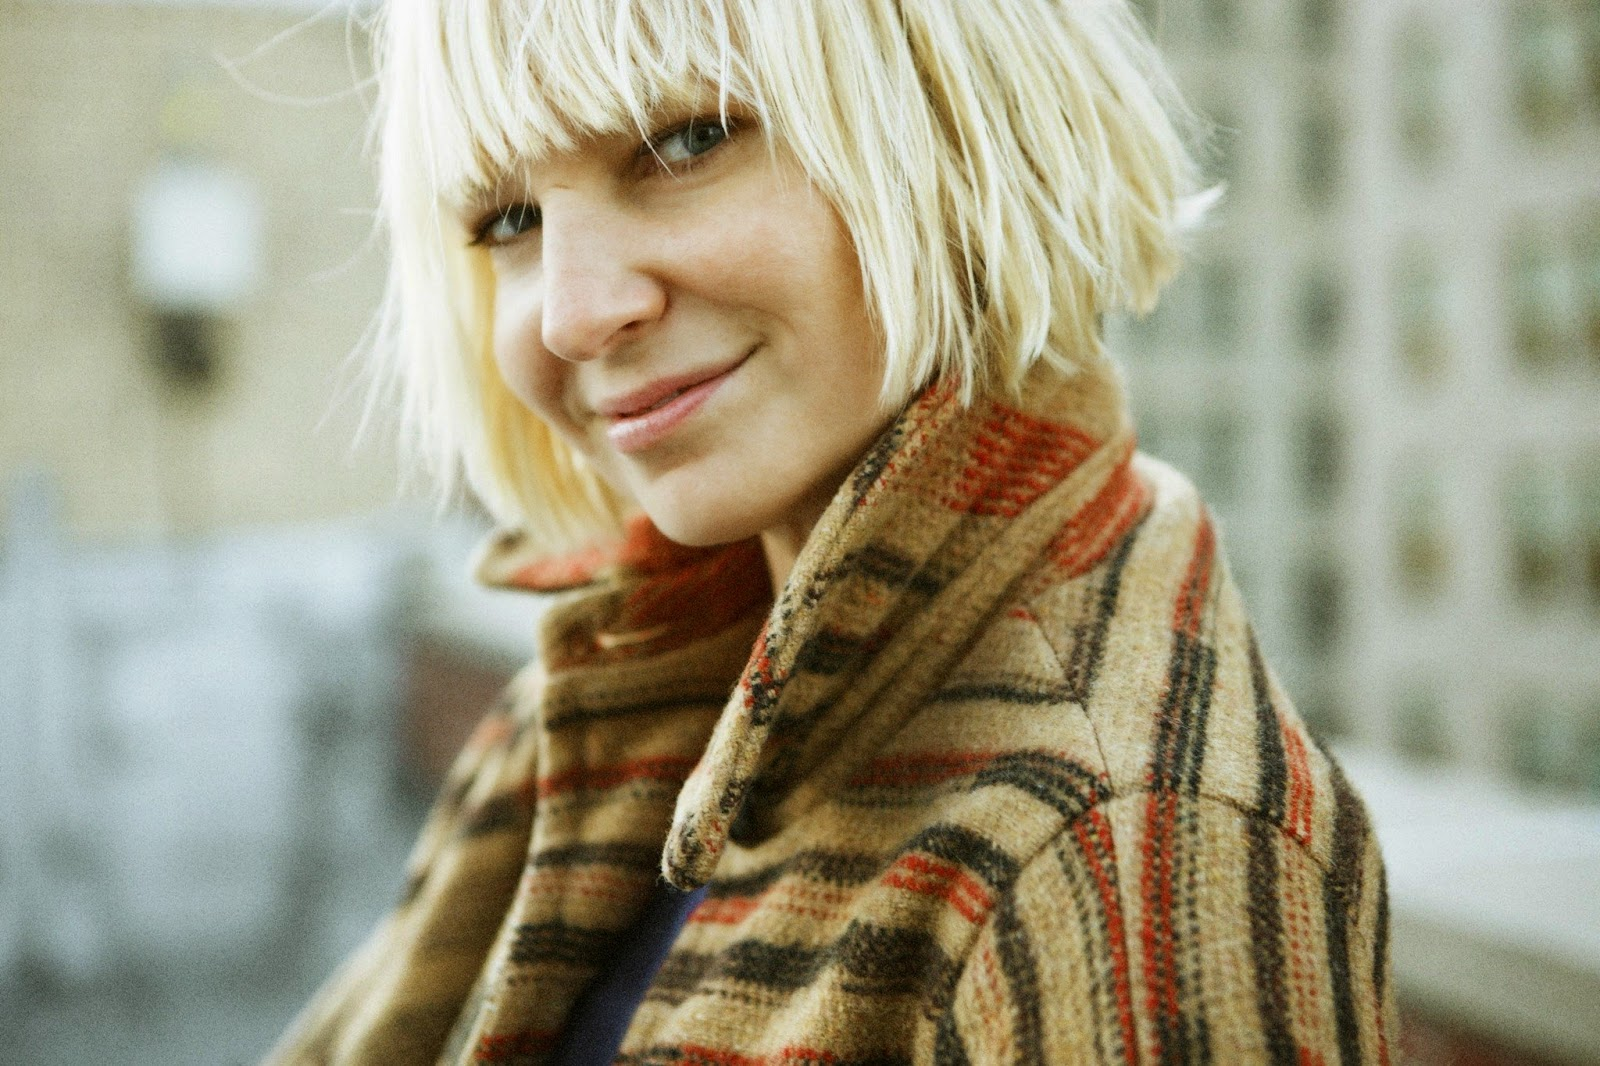 Charming sia chandelier chandeliermtv video music award 2014 video of the year mozeypictures Choice Image